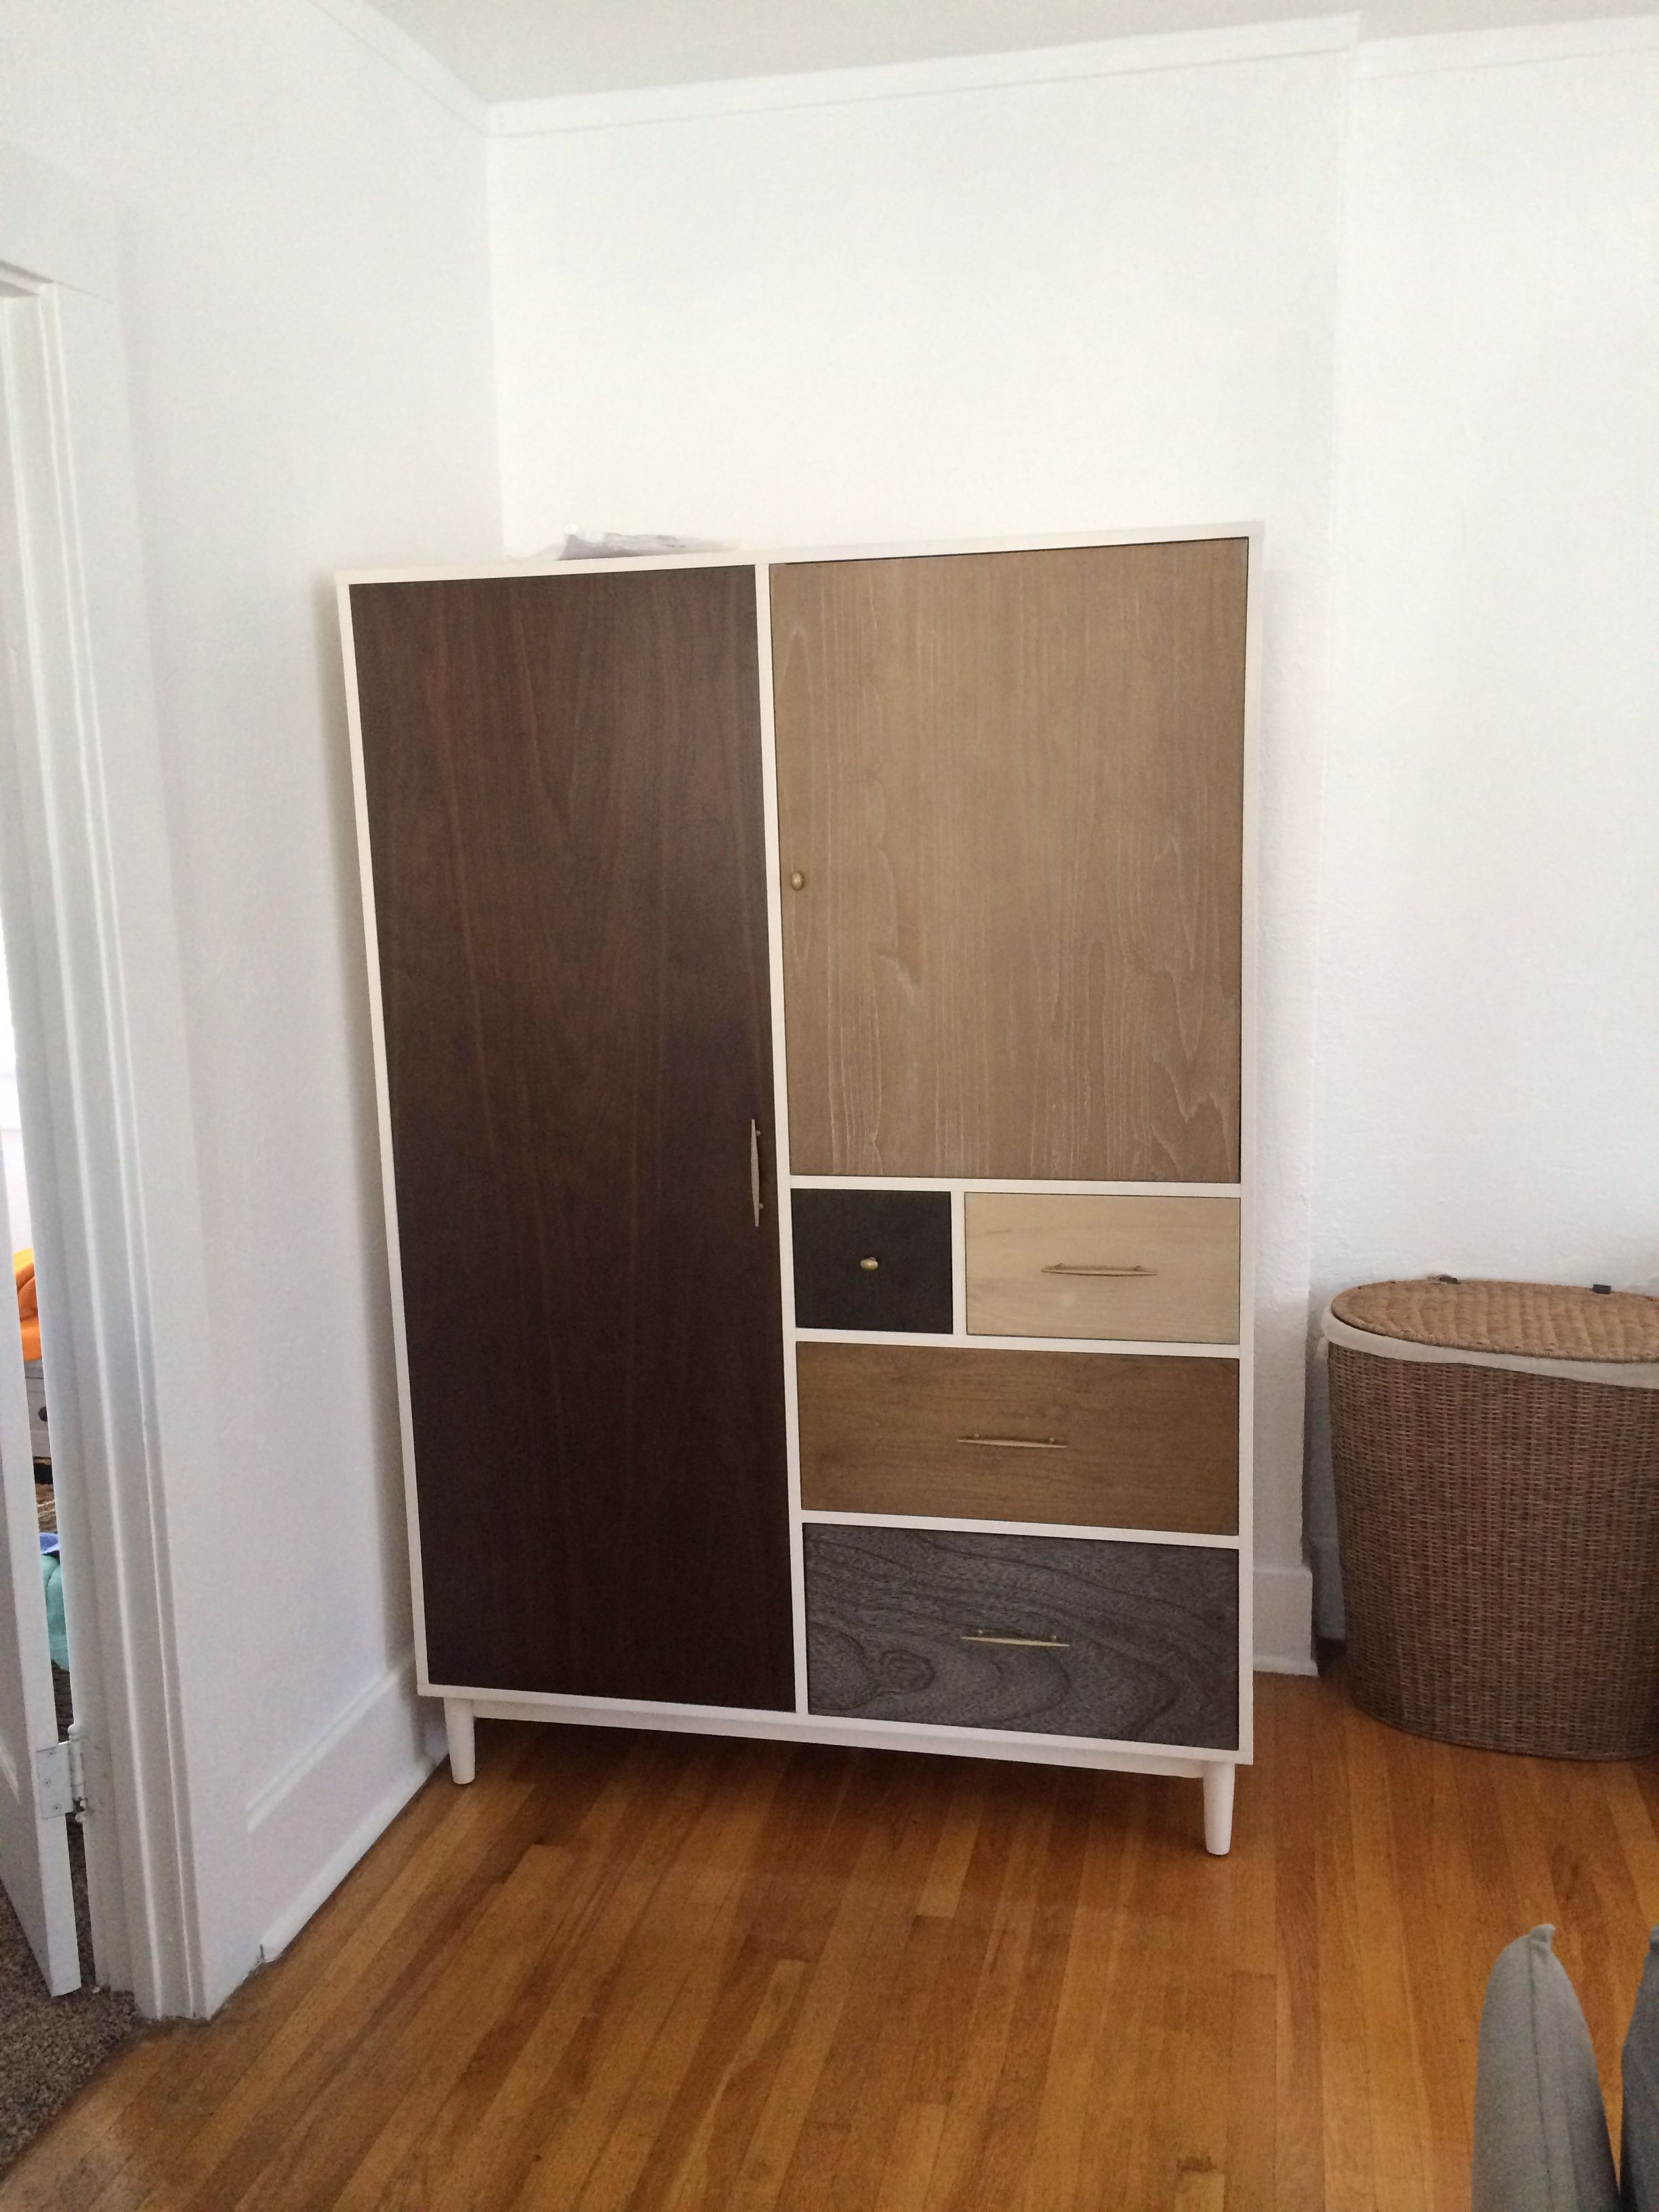 New armoire from west elm | Home decor, Furniture, Decor